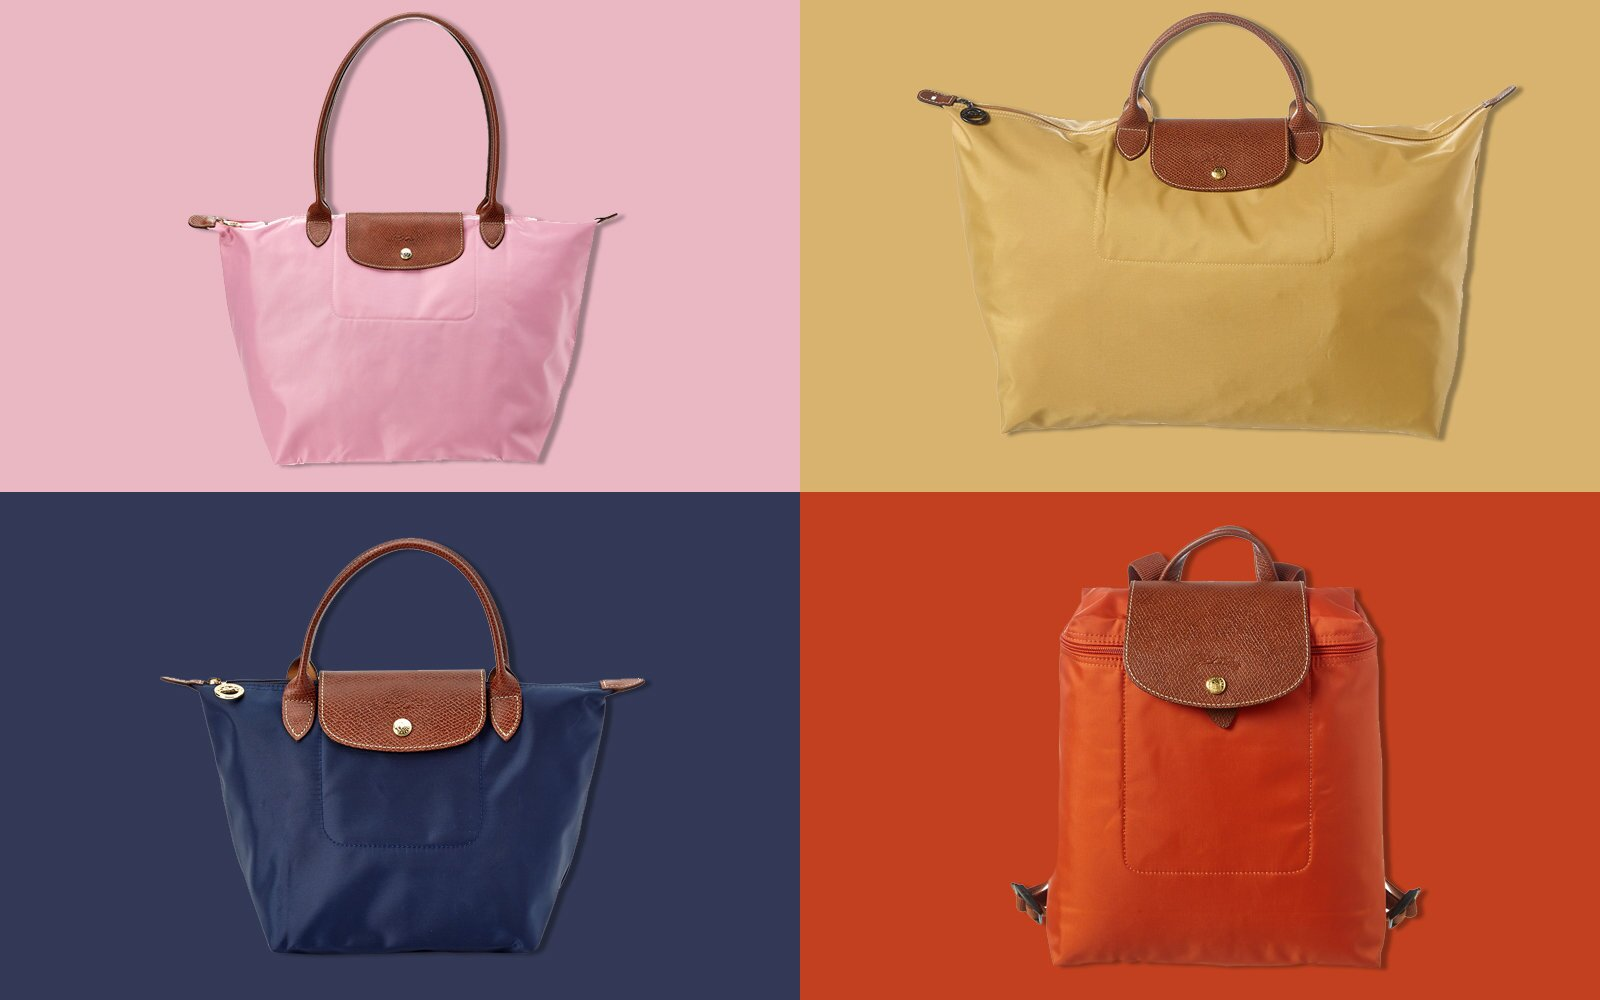 50776431c Longchamp's Best Travel Bags Are up to 70% off on This Secret Sale Site  Right Now